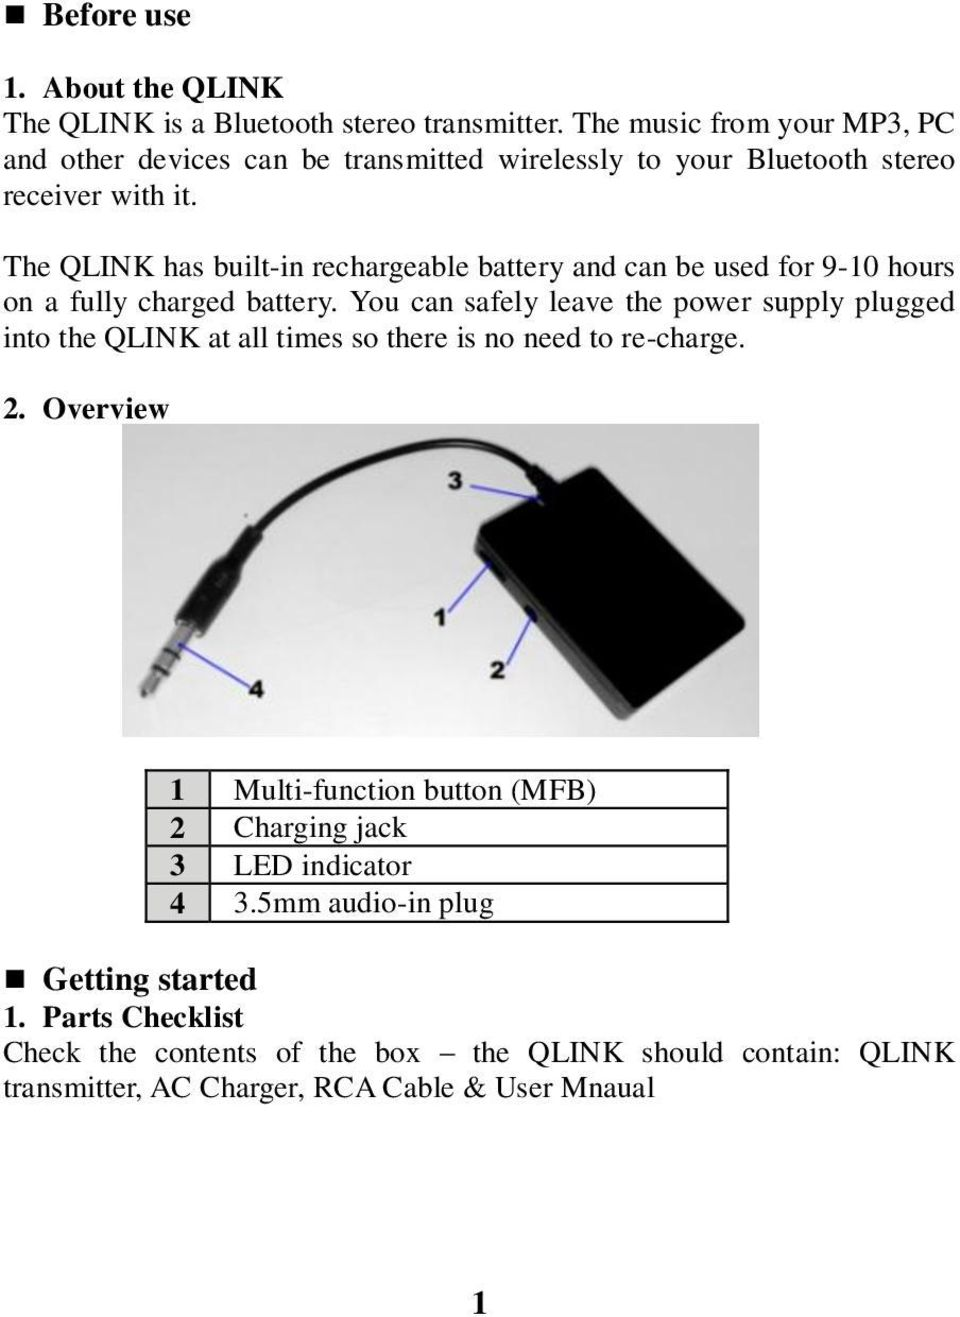 The QLINK has built-in rechargeable battery and can be used for 9-10 hours on a fully charged battery.